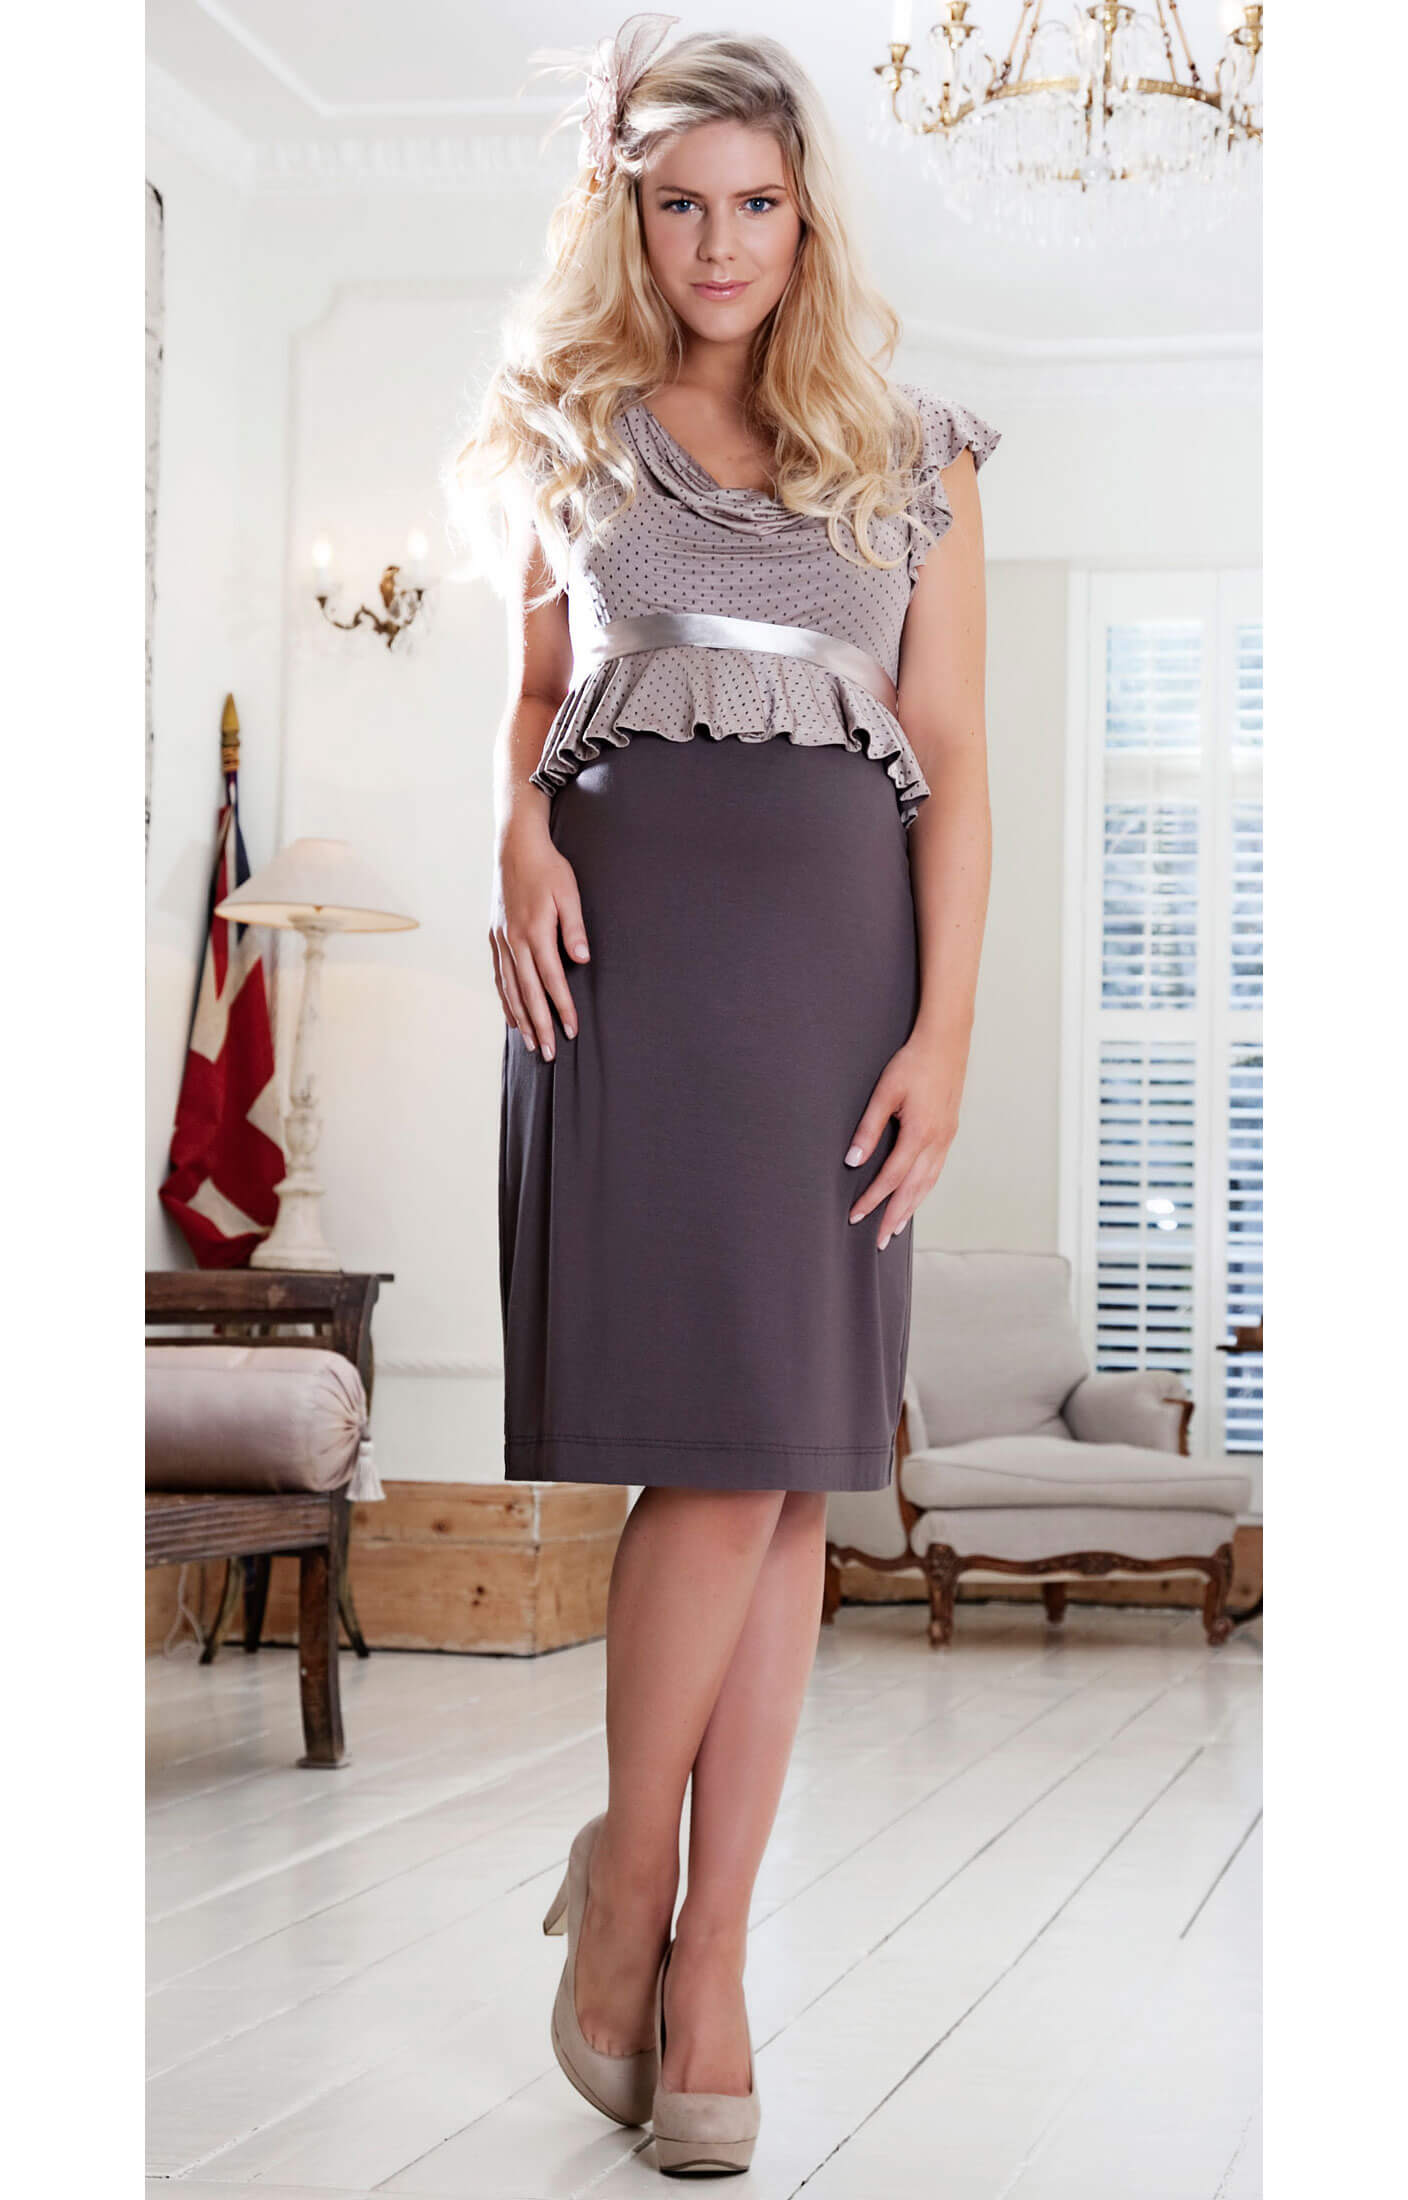 maternity dresses & skirts. At mothercare, we tailor our designs to local pregnant mums to get the best fit for our maternity dresses. So you can be rest assured that you'll look and feel wonderful all the way through to the big day.